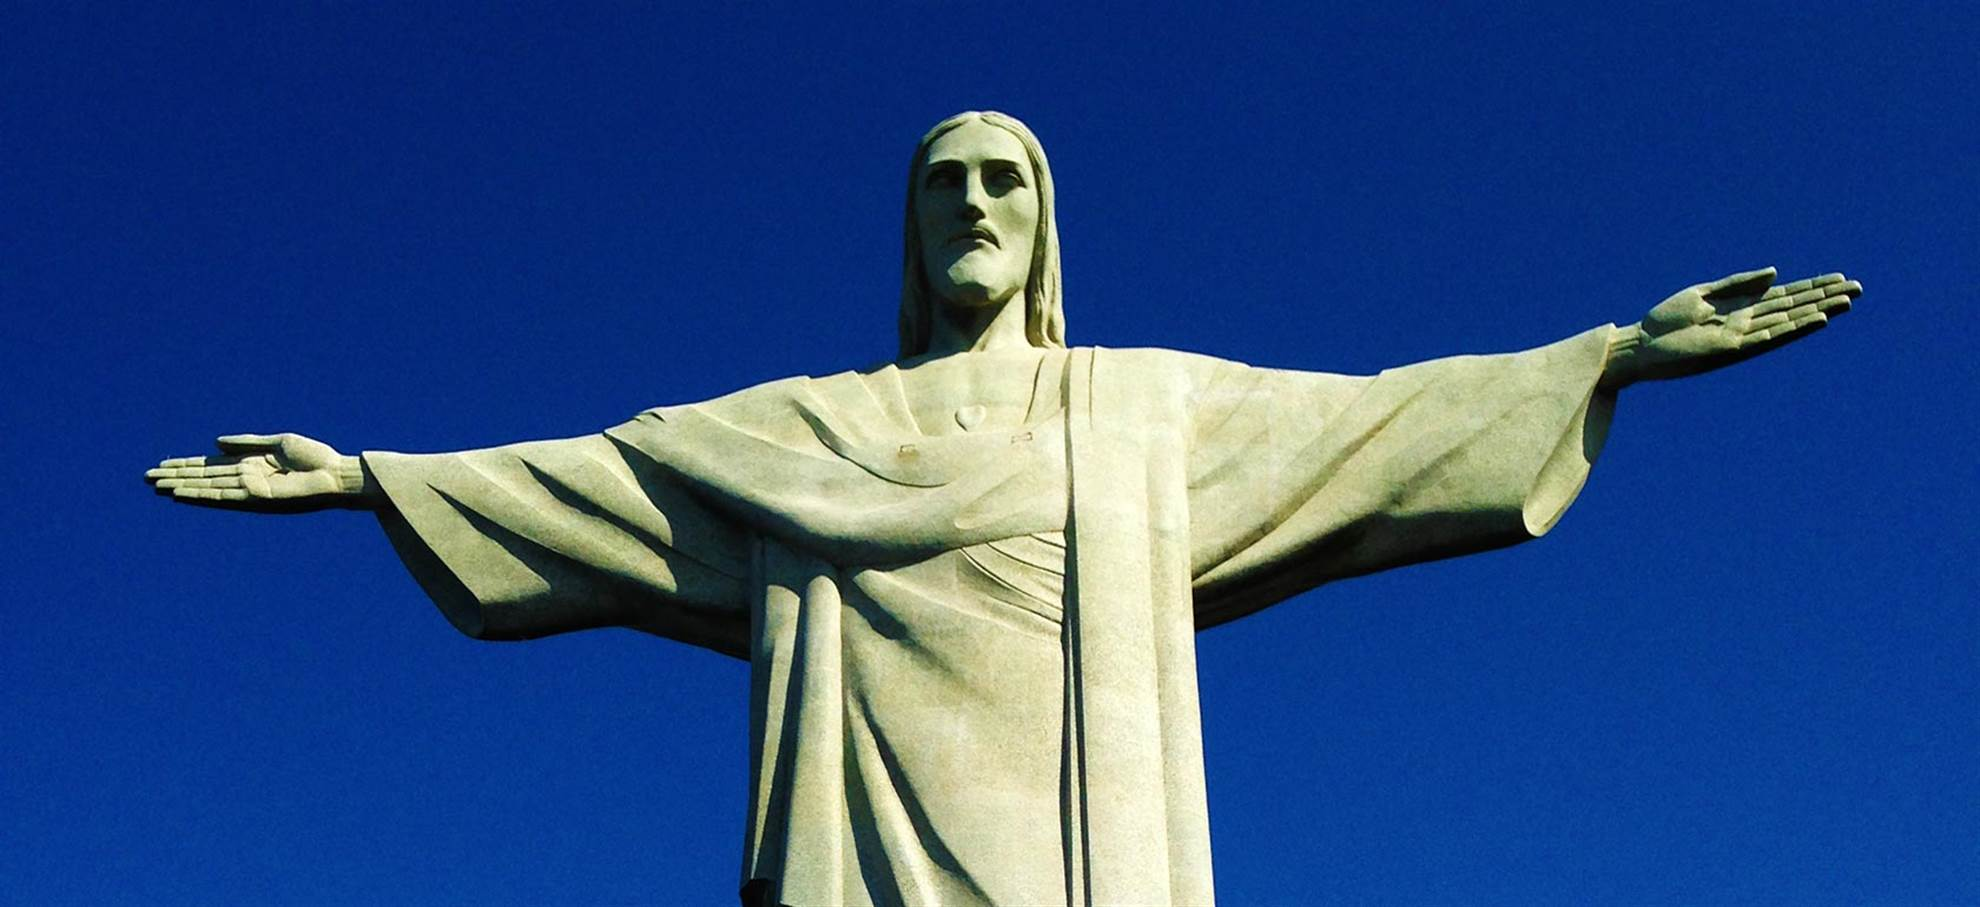 Corcovado with Christ Redeemer Statue